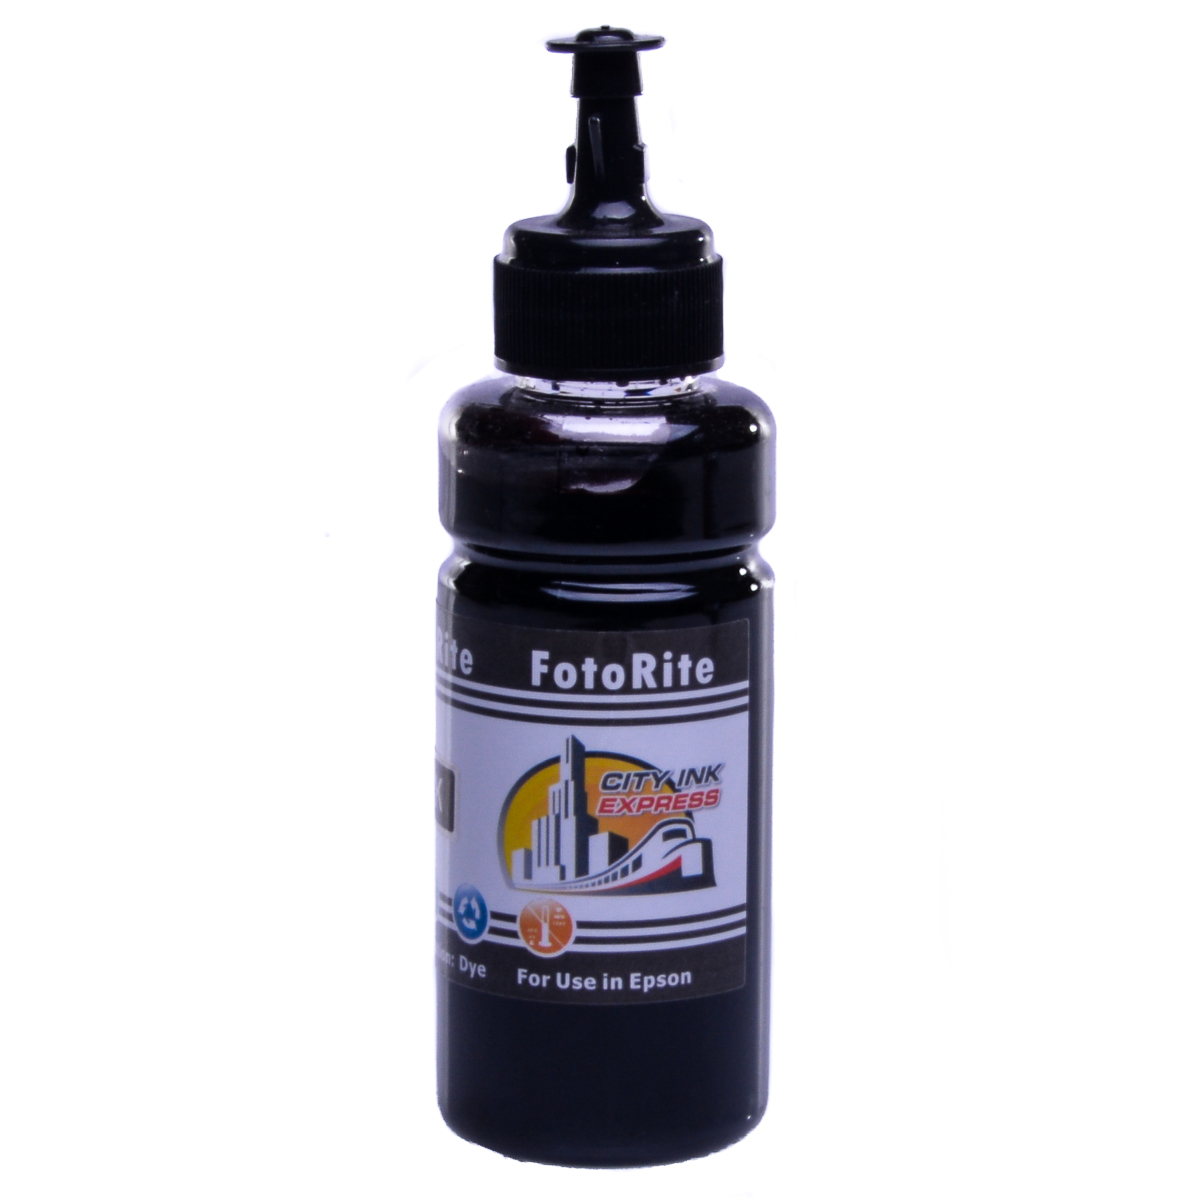 Cheap Black dye ink refill replaces Epson L850 - T6731